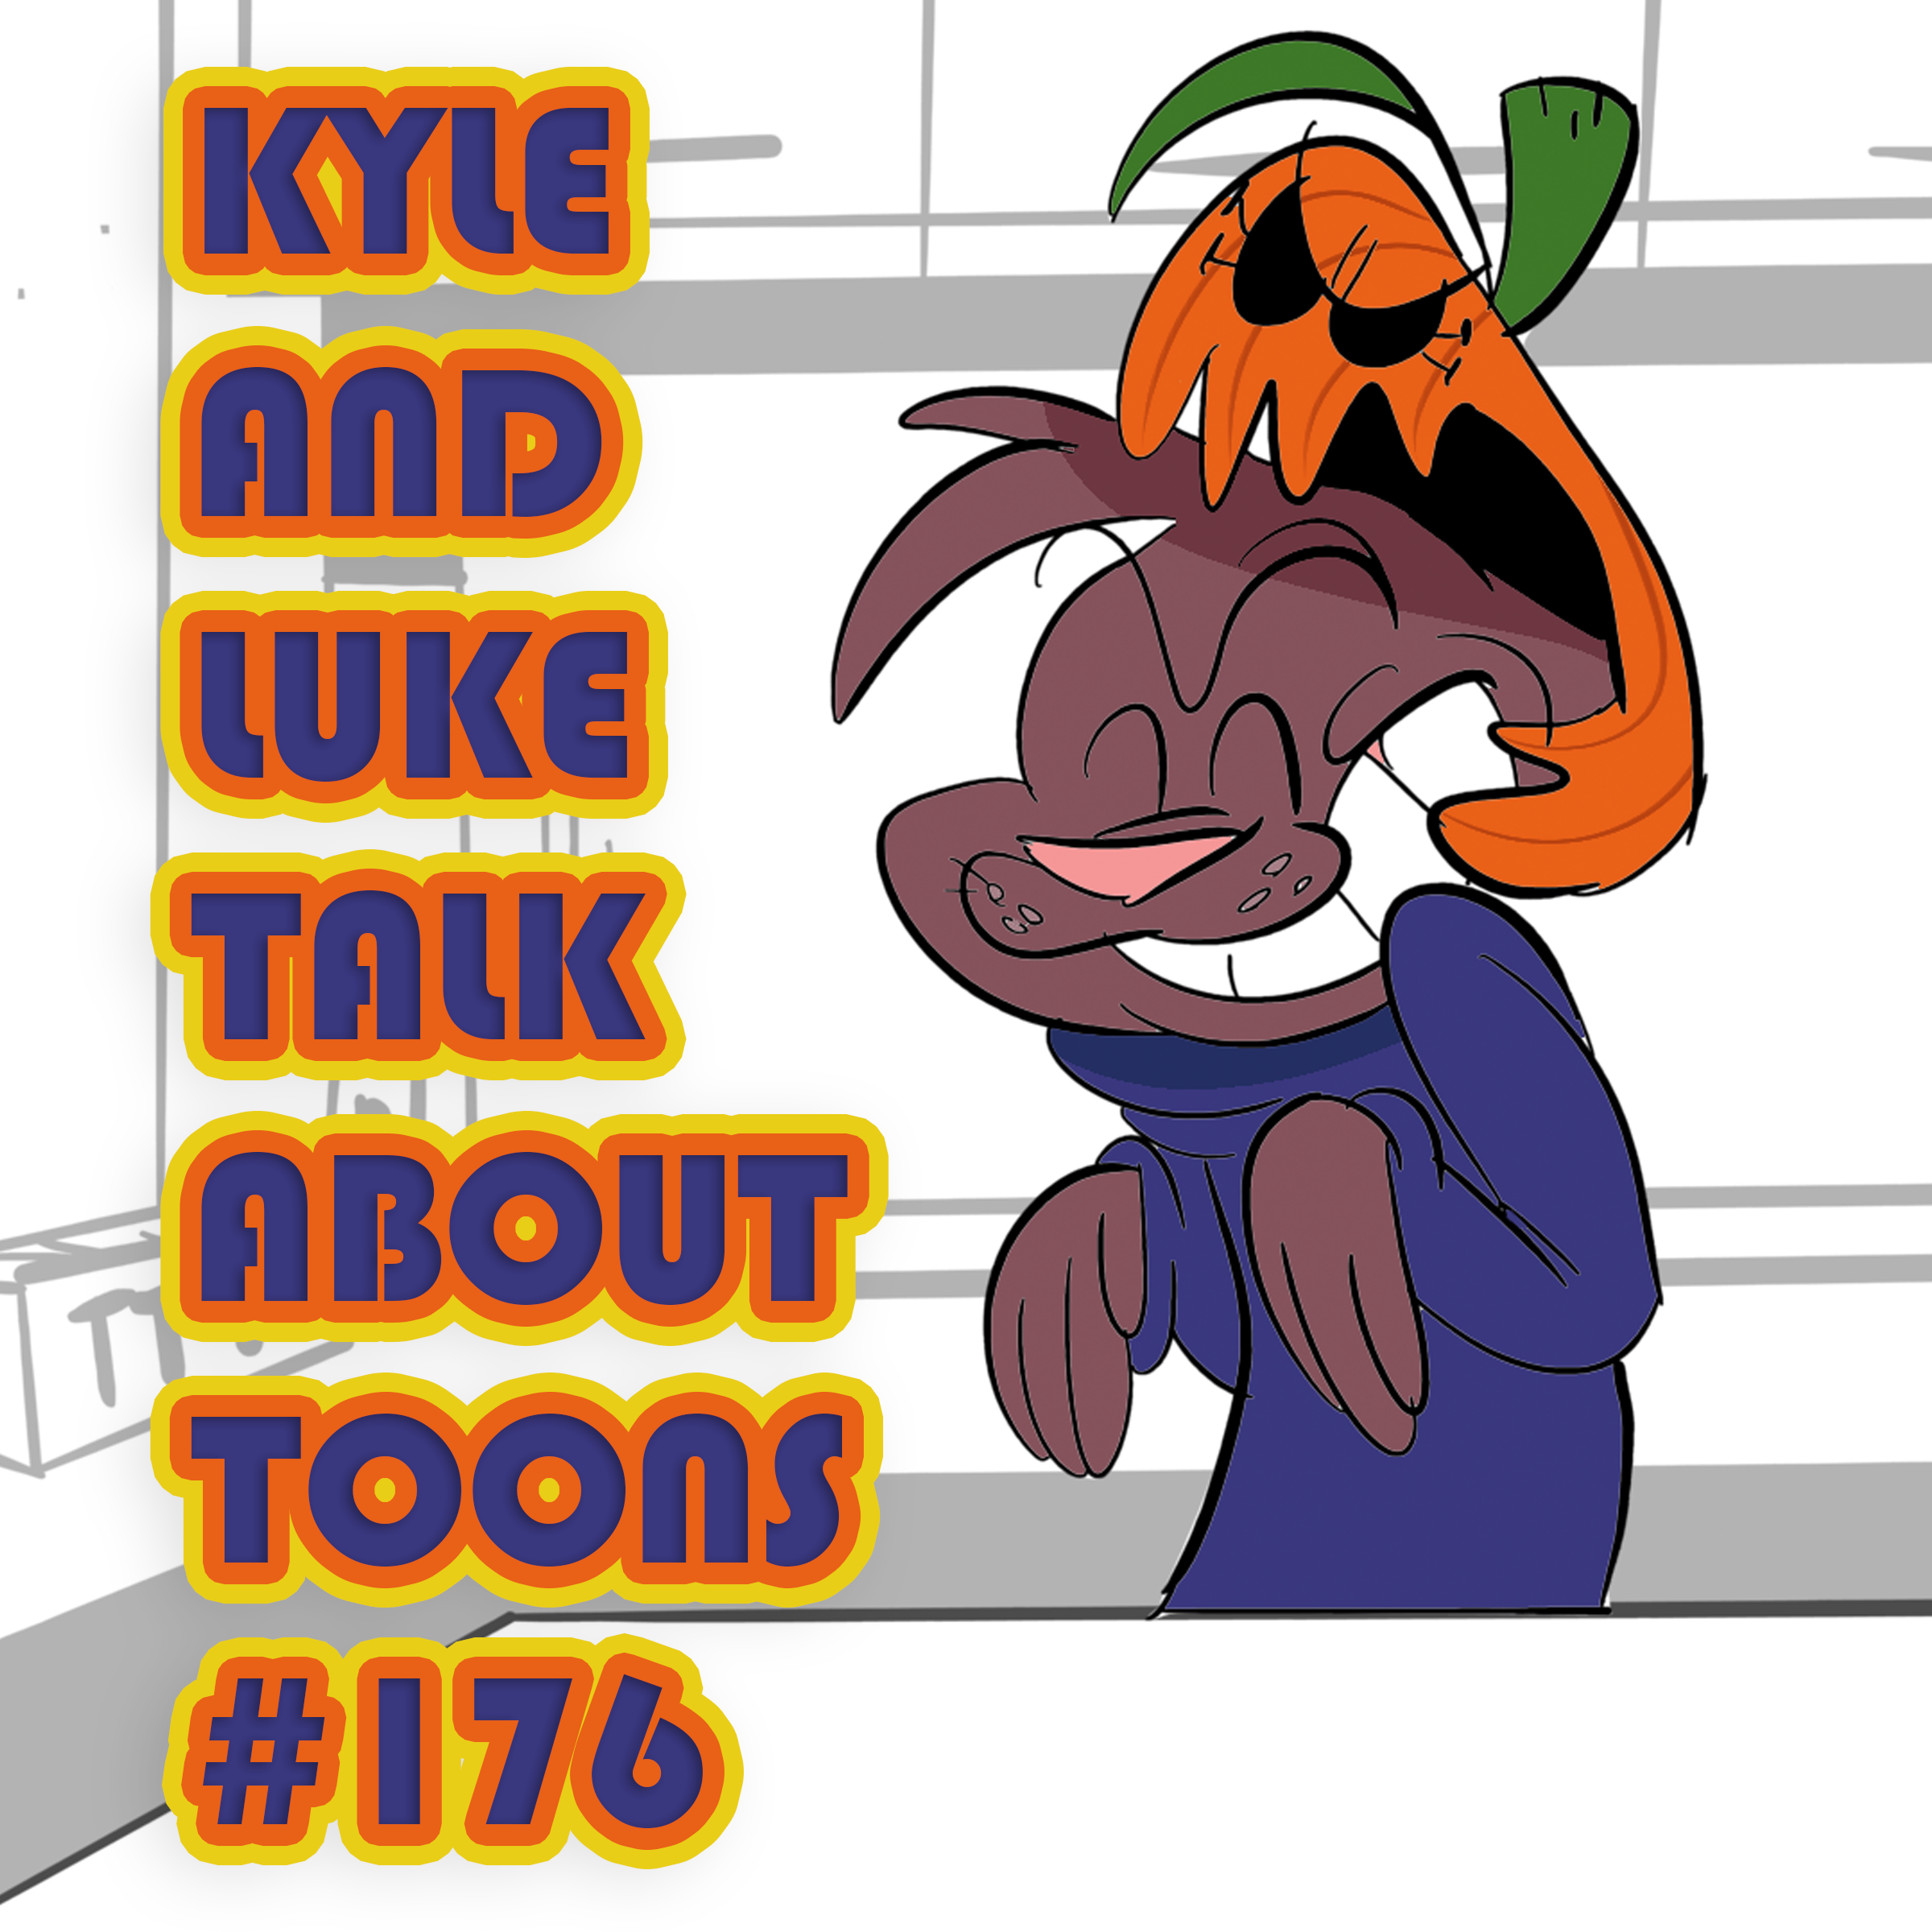 Kyle and Luke Talk About Toons #176: Freestyle Cheese Rapping